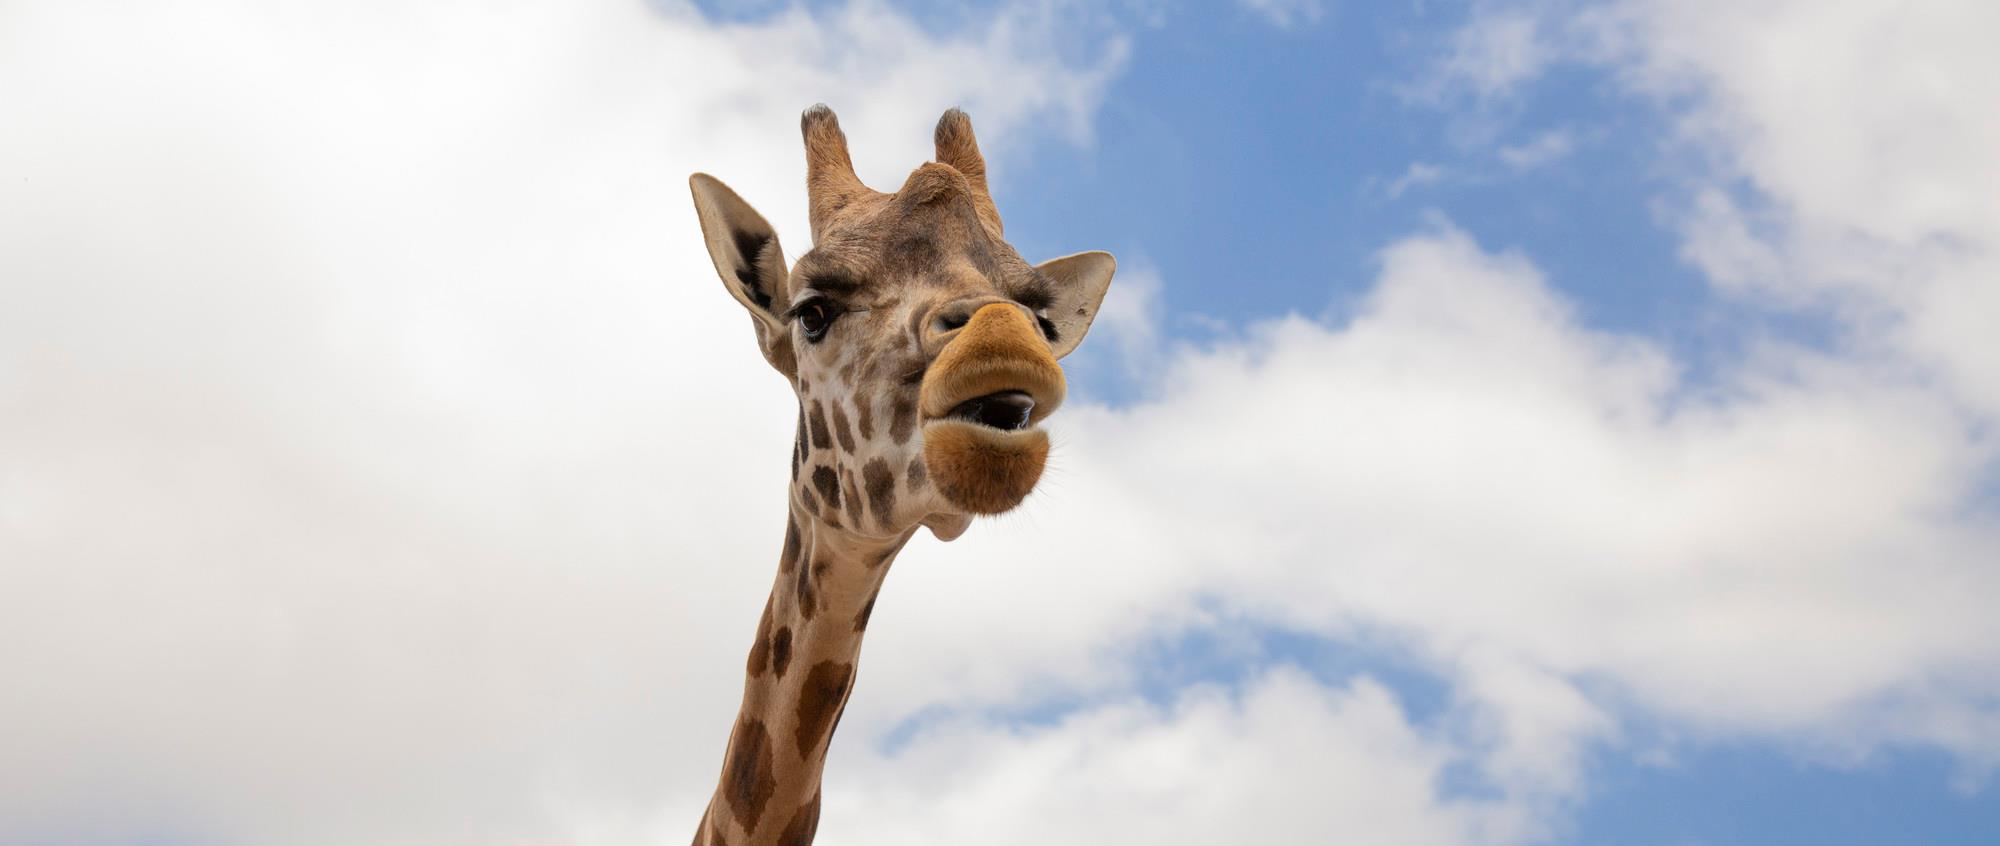 Giraffe head and long neck close up with blue sky and fluffy clouds in the background. Its mouth is partially open.